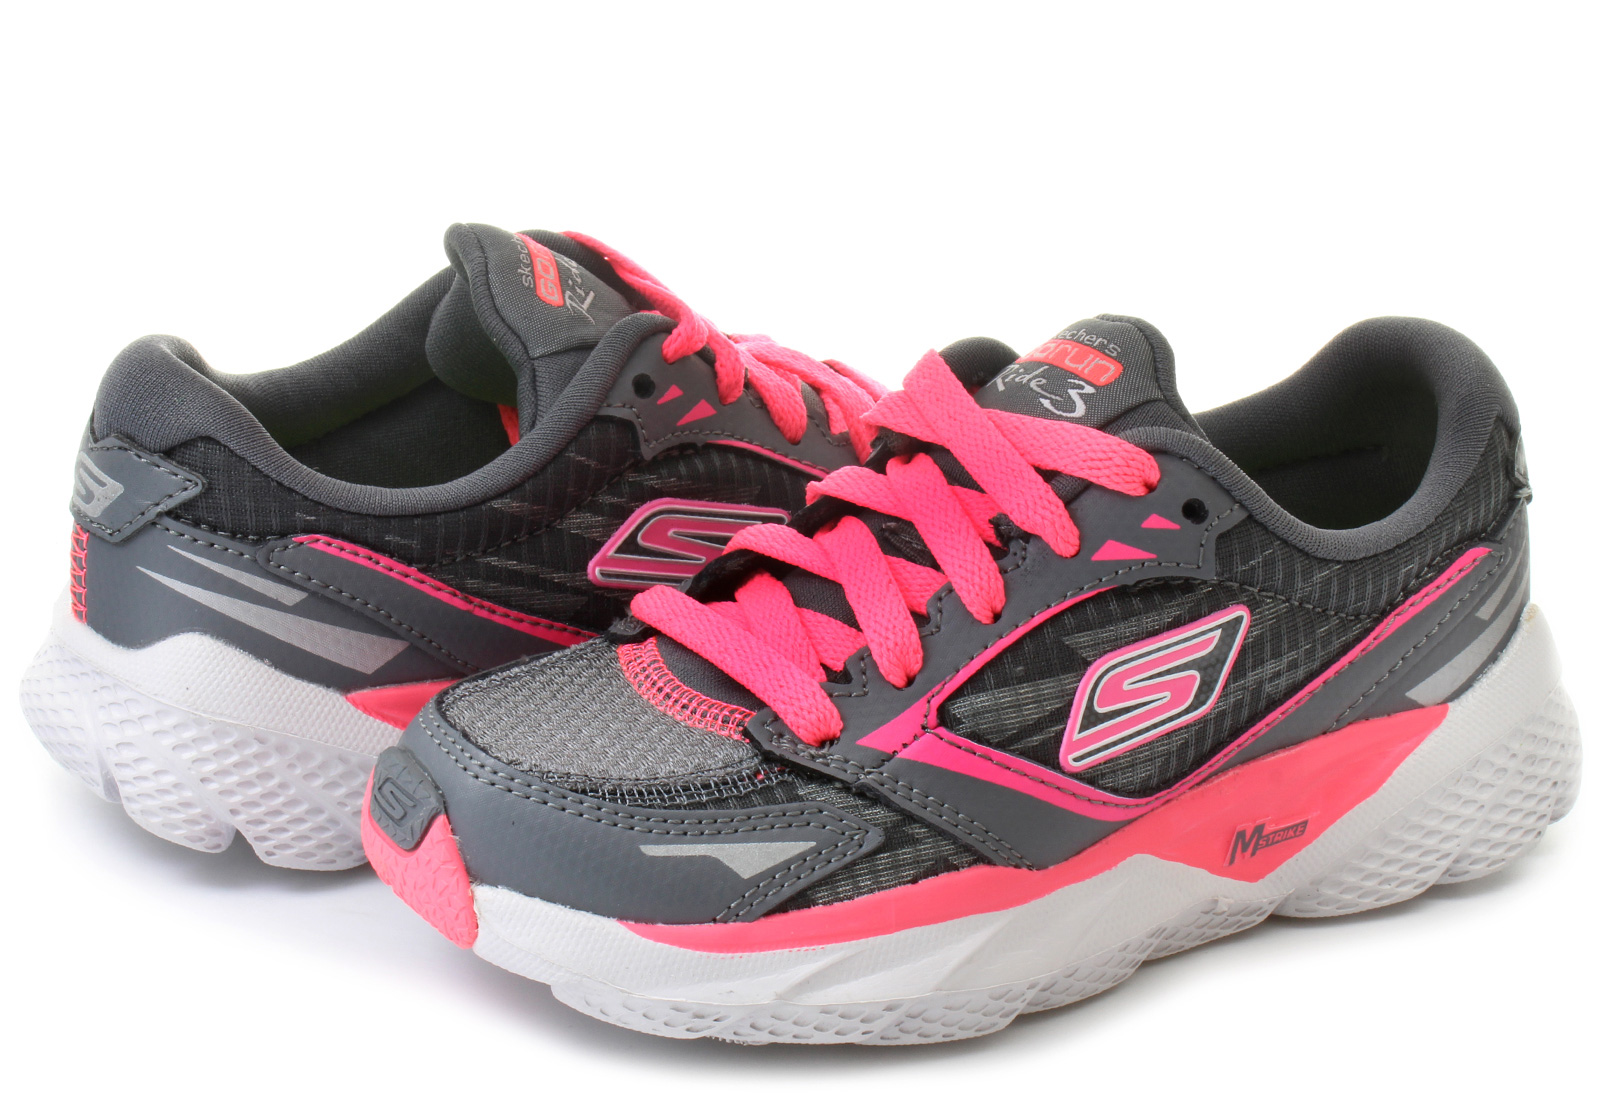 de7287ec36a Tenis Skechers Go Run Ride 3 80635l Infantil